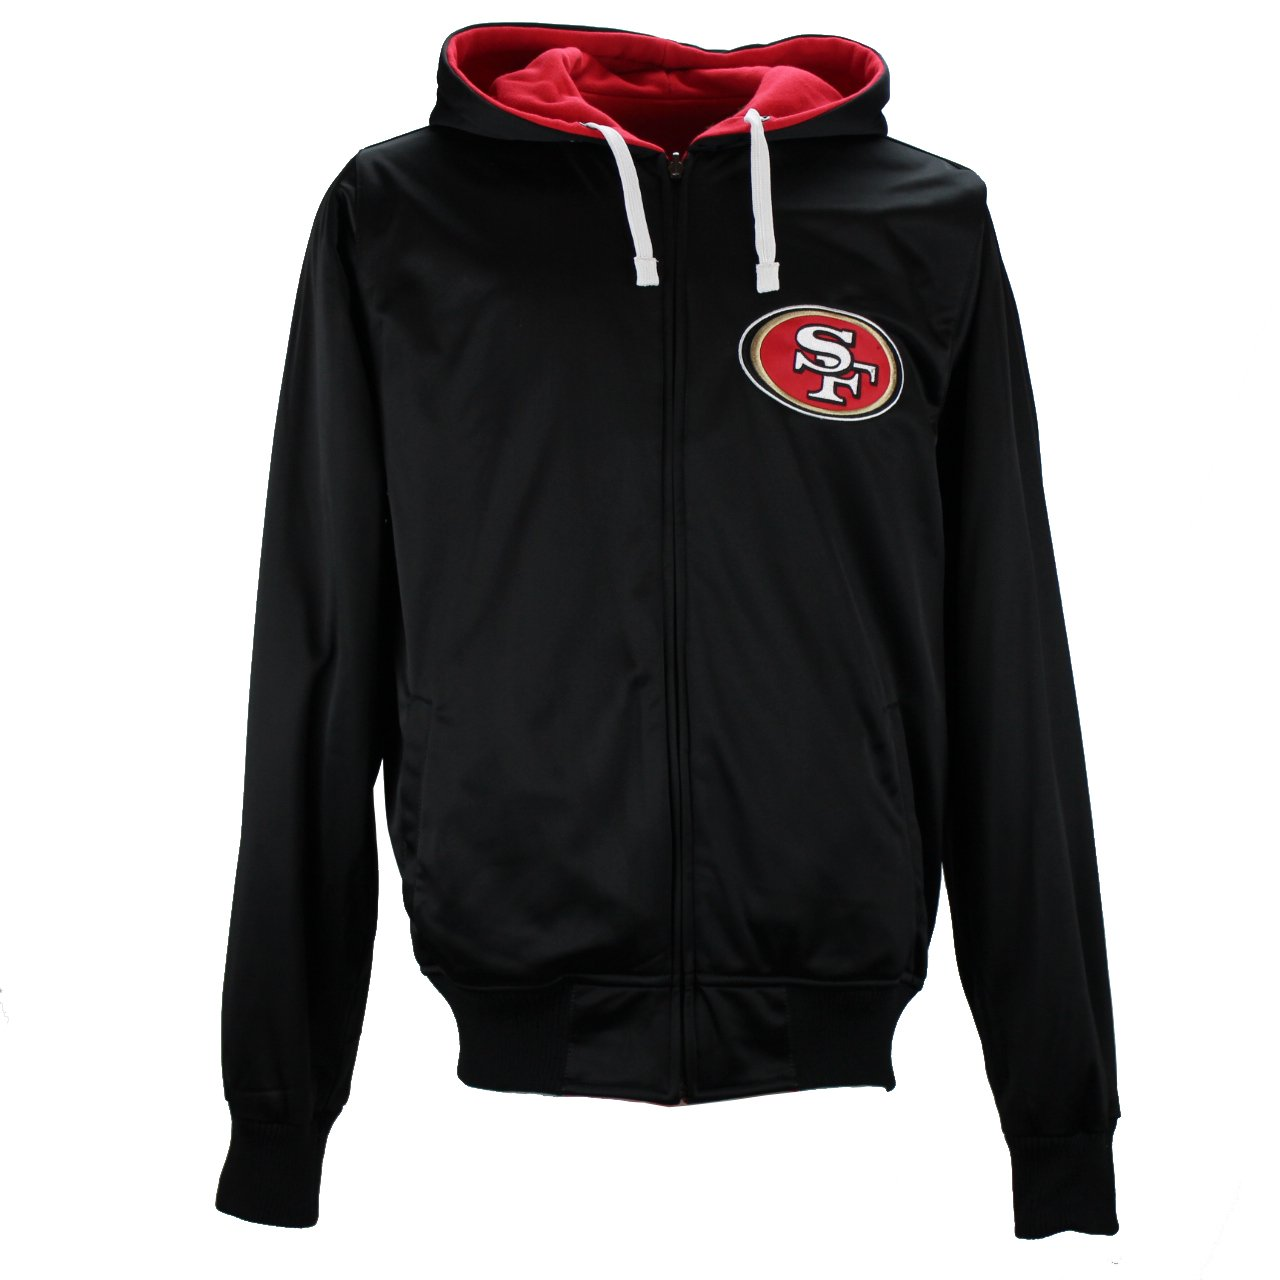 timeless design 3ae25 57c78 Amazon.com : NFL Men's San Francisco 49ers SPIRIT Reversible ...